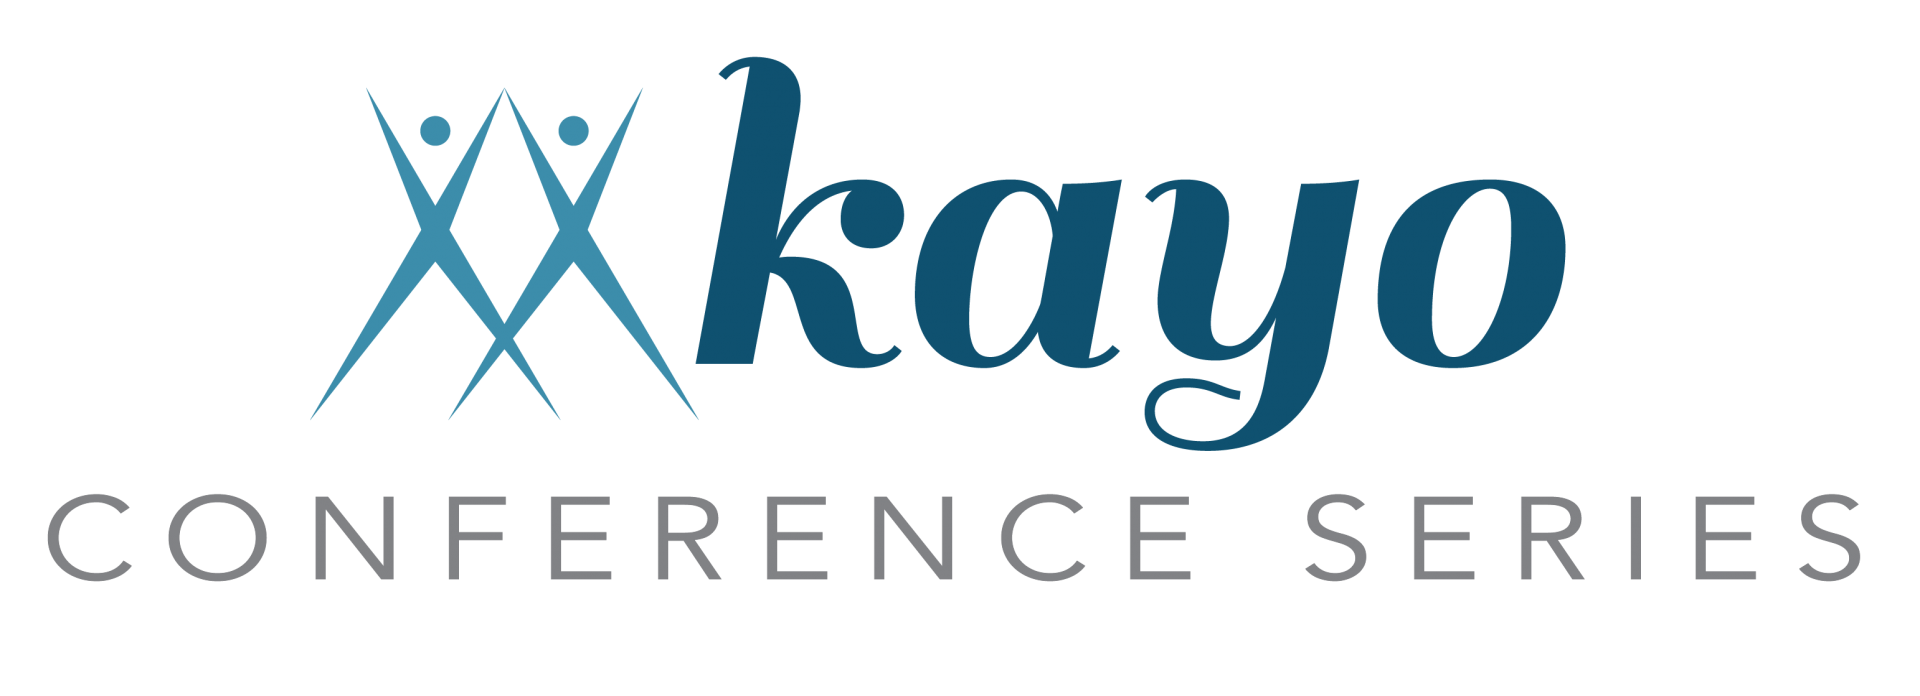 Kayo Conference Series